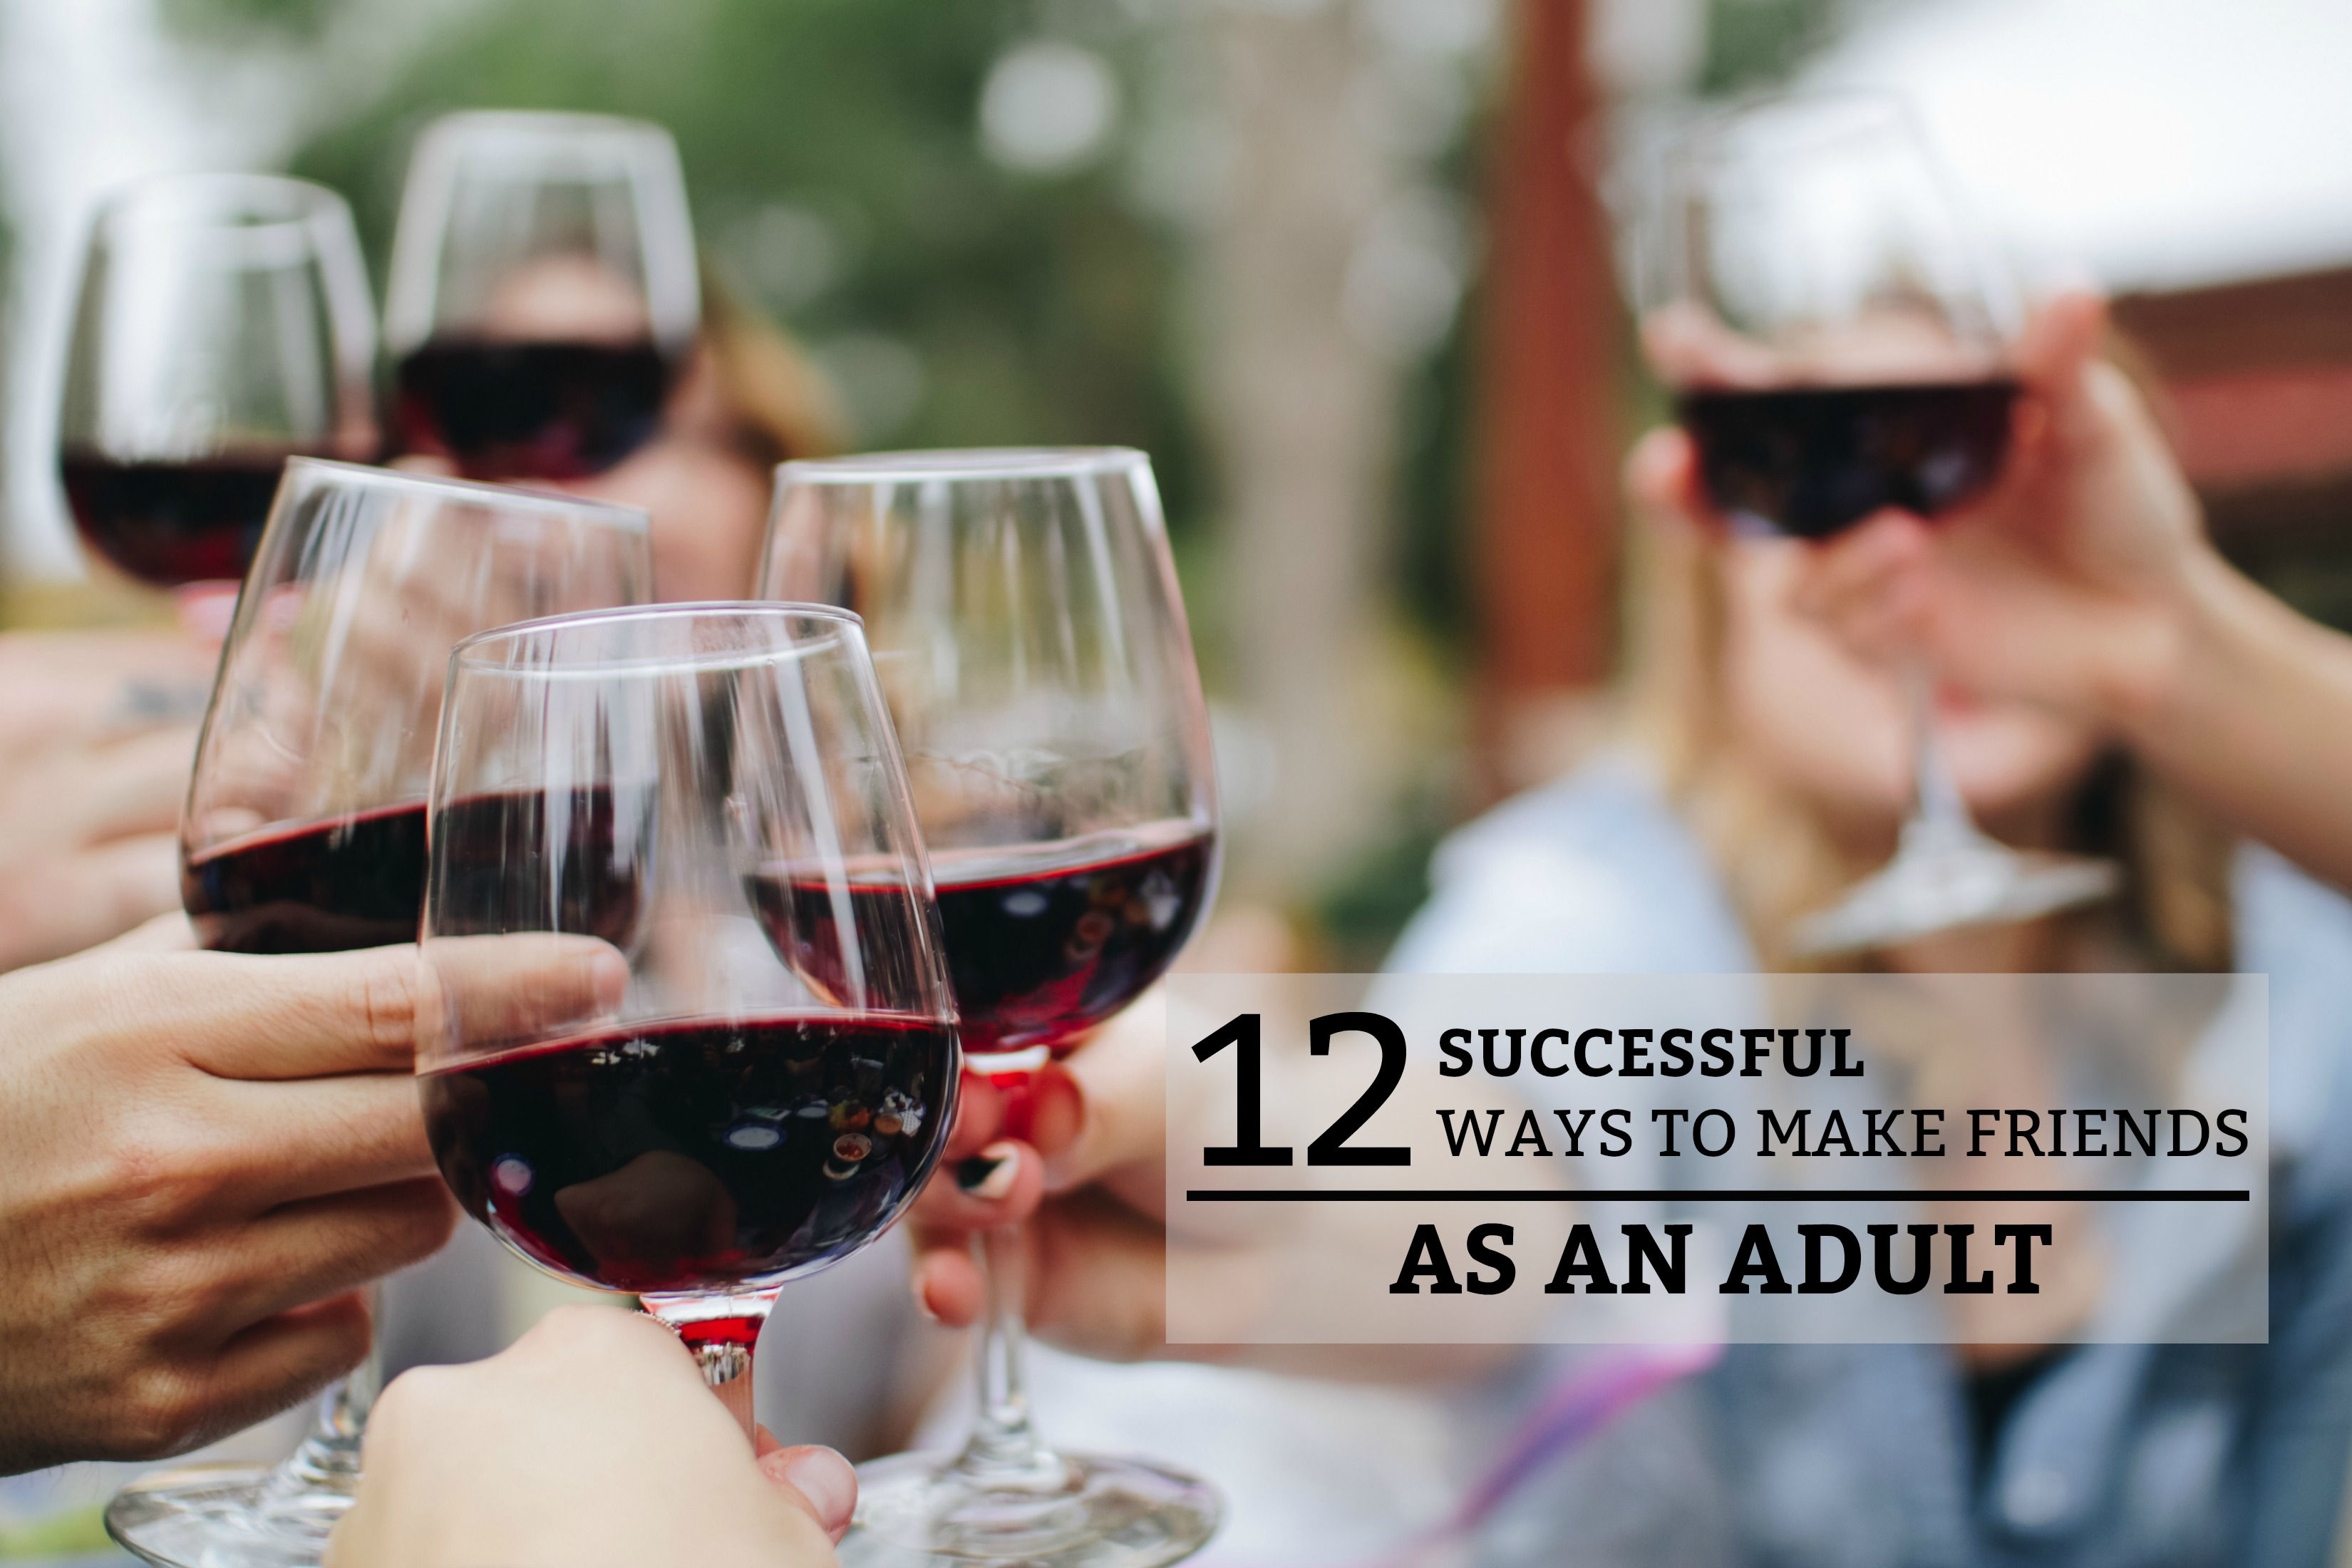 12 Successful Ways to Make Friends as an Adult - a practical guide on how to create lasting friendships as an adult. www.tradingaverage.com